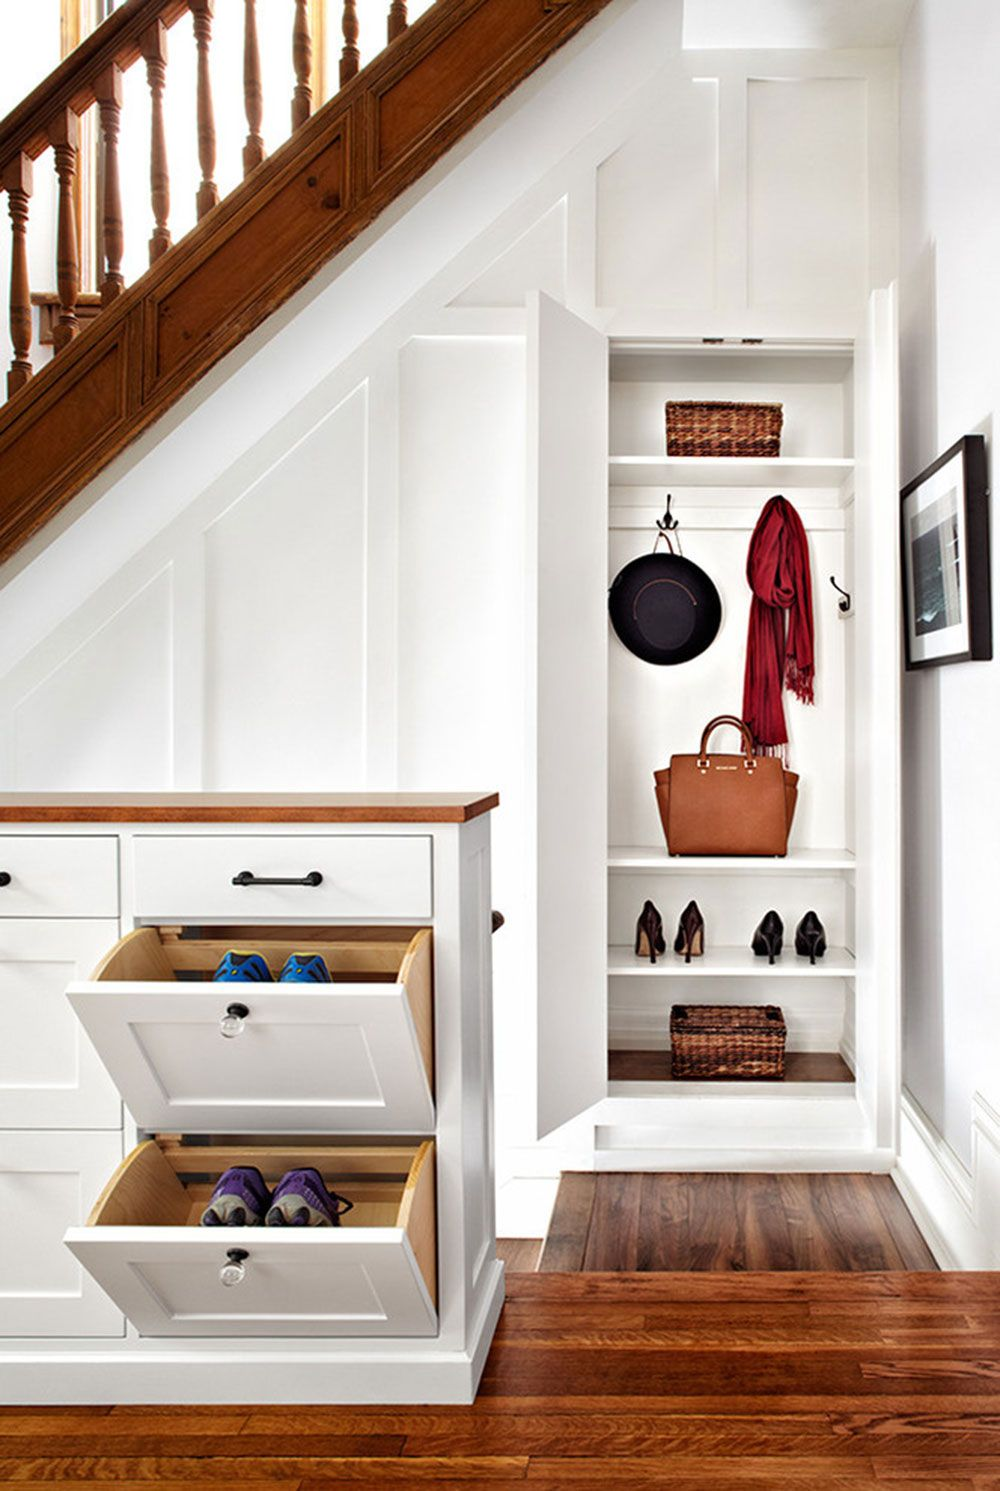 Under Stairs Storage How to Maximize the Space from Your